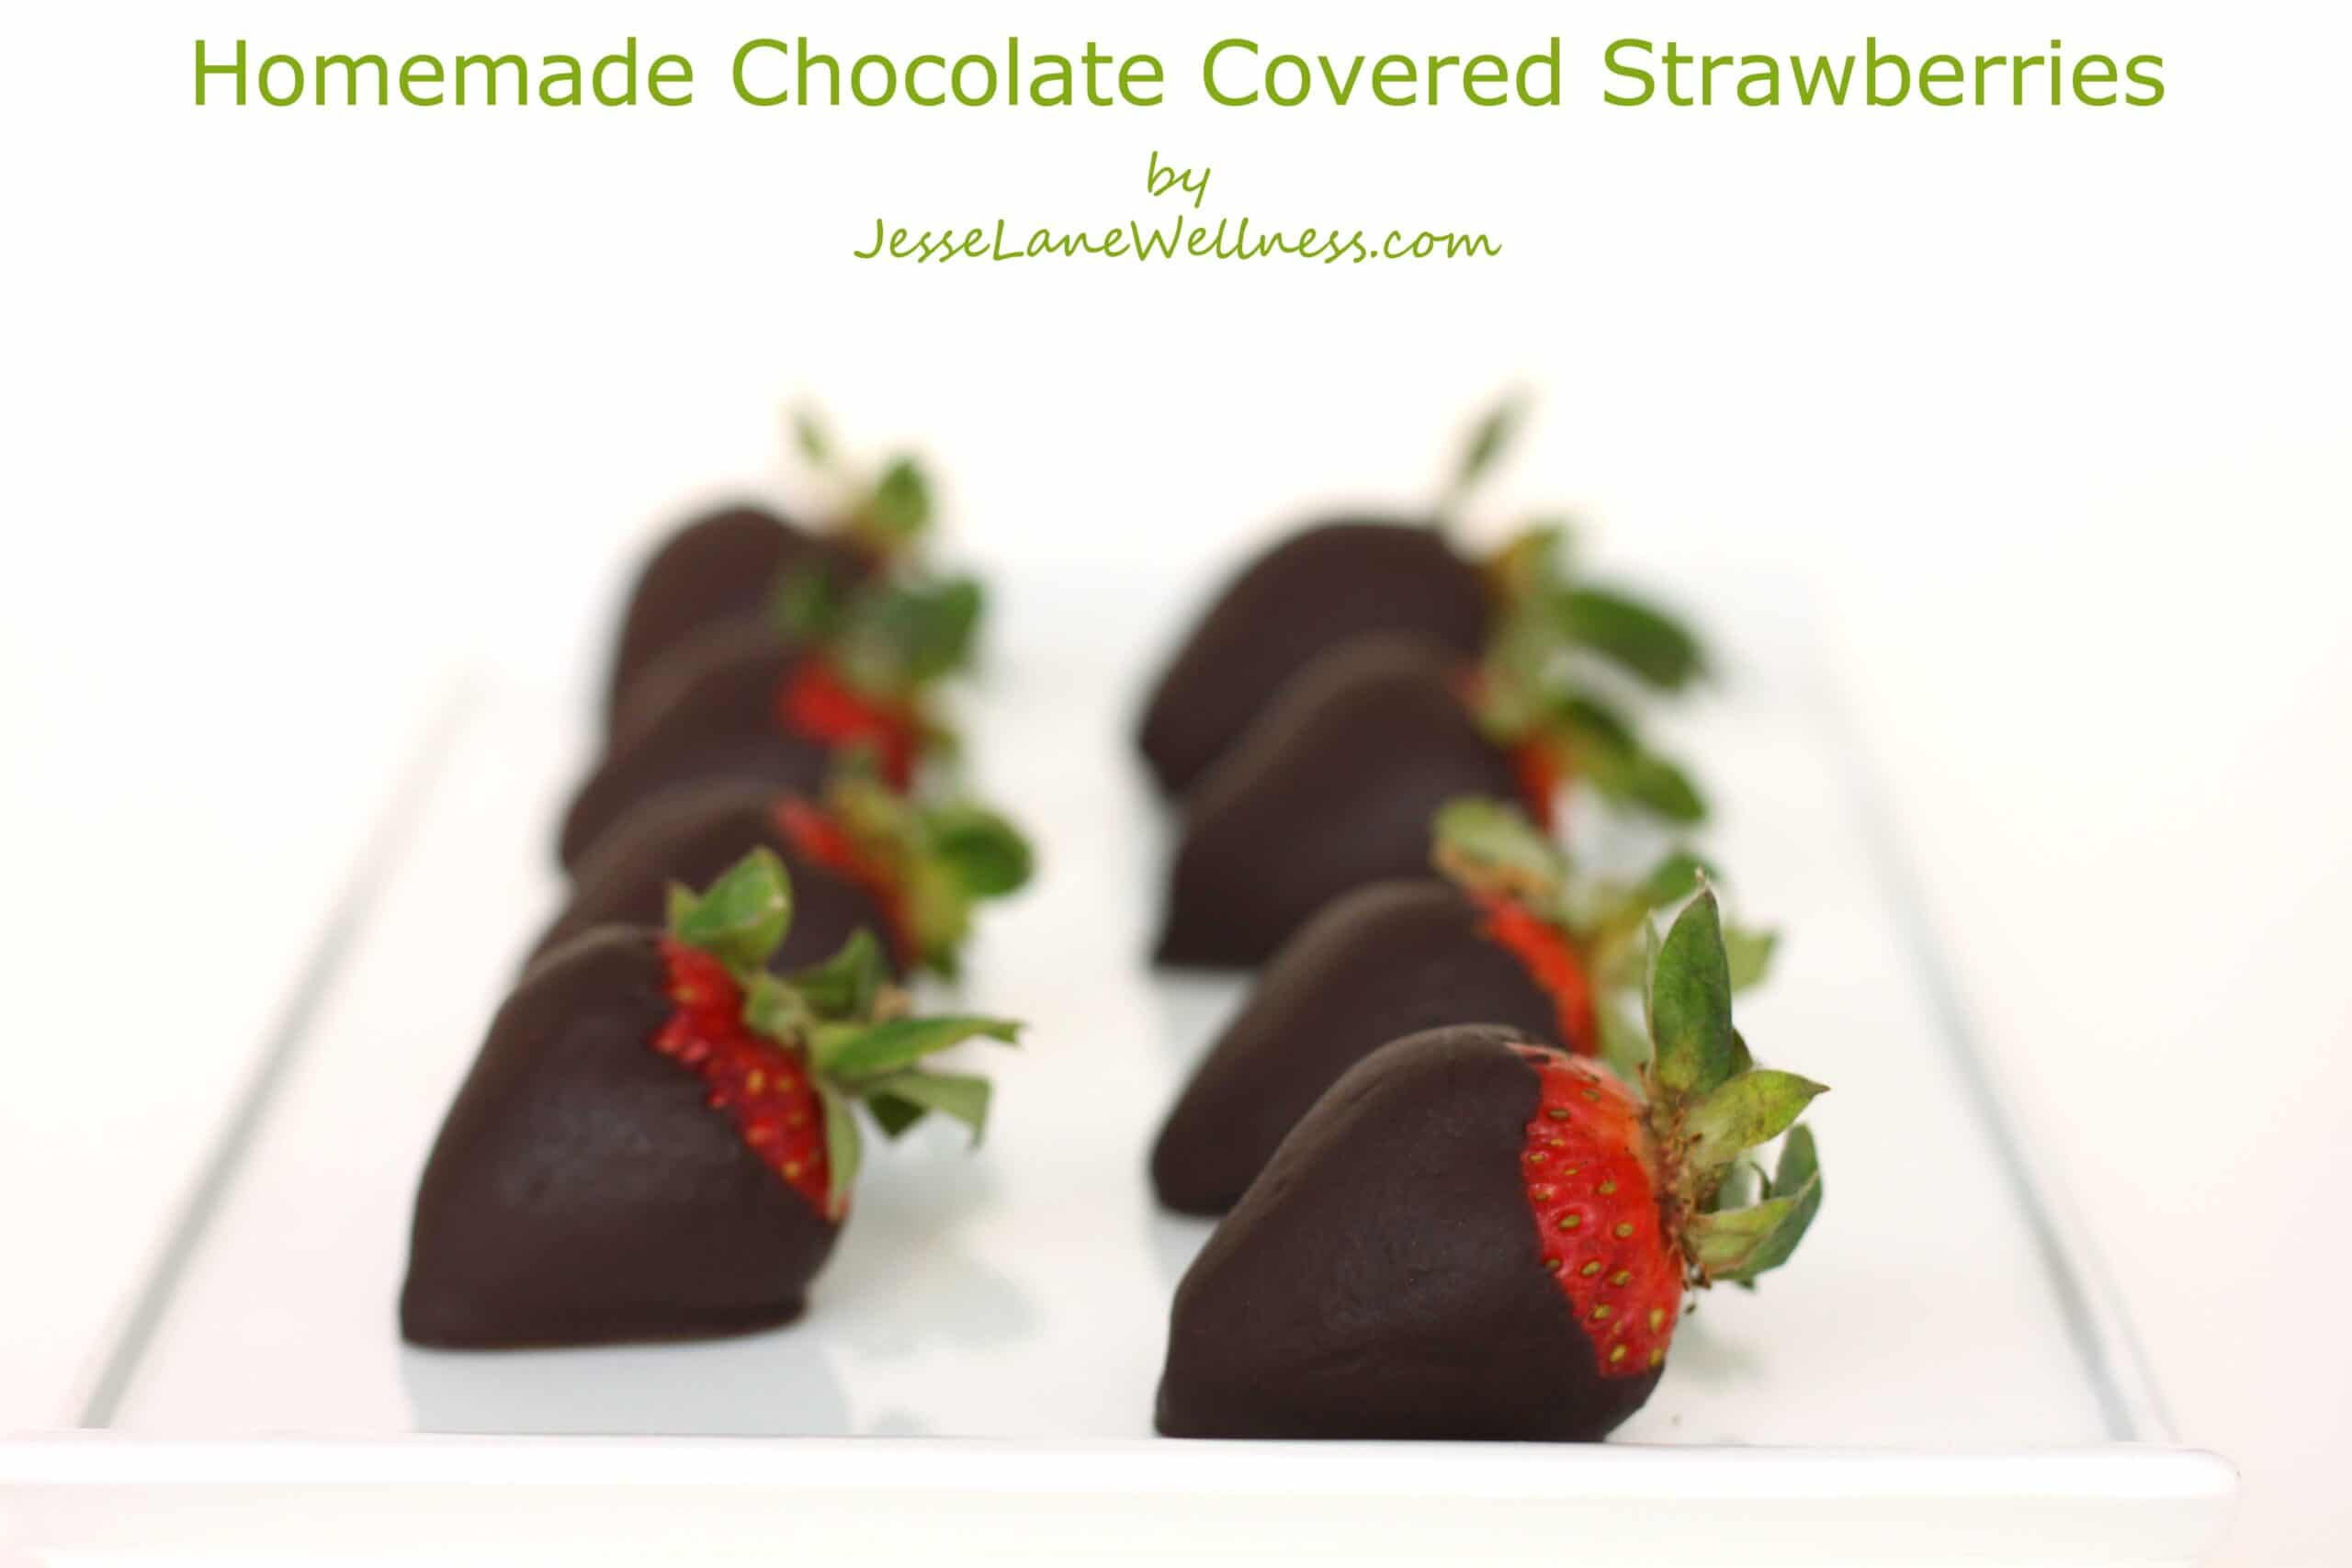 Homemade Chocolate Covered Strawberries by @jesselwellness #strawberries #glutenfree #dessert